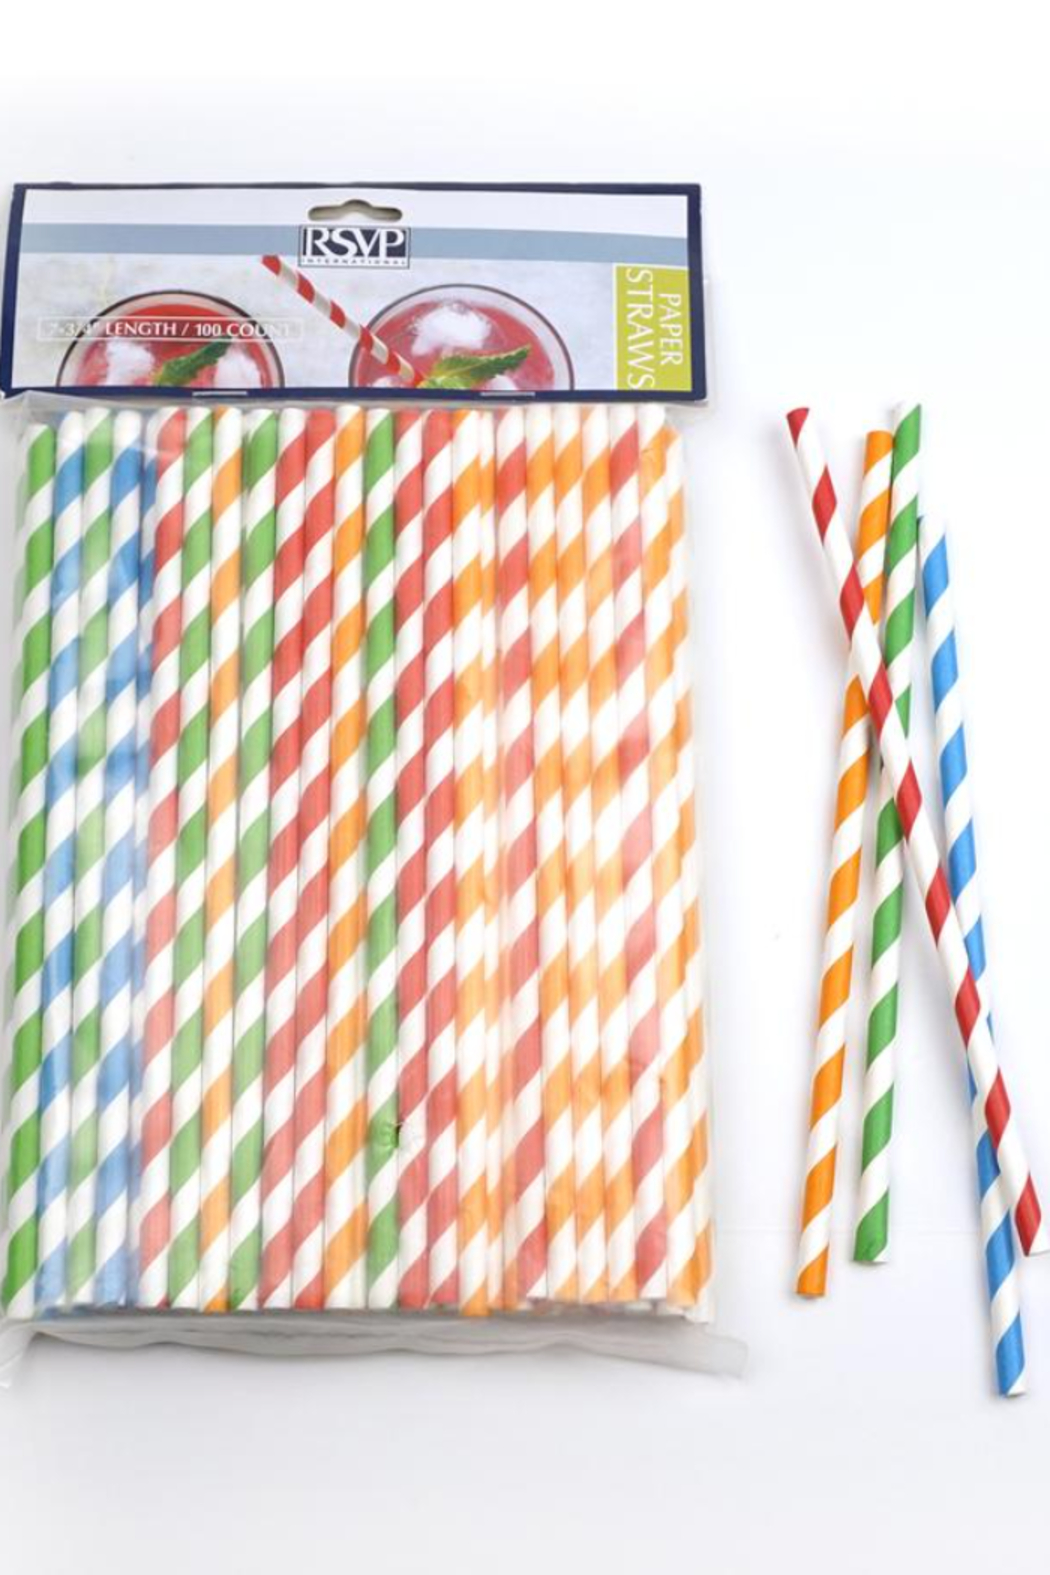 RSVP PS-100S Paper Straw Striped - Main Image